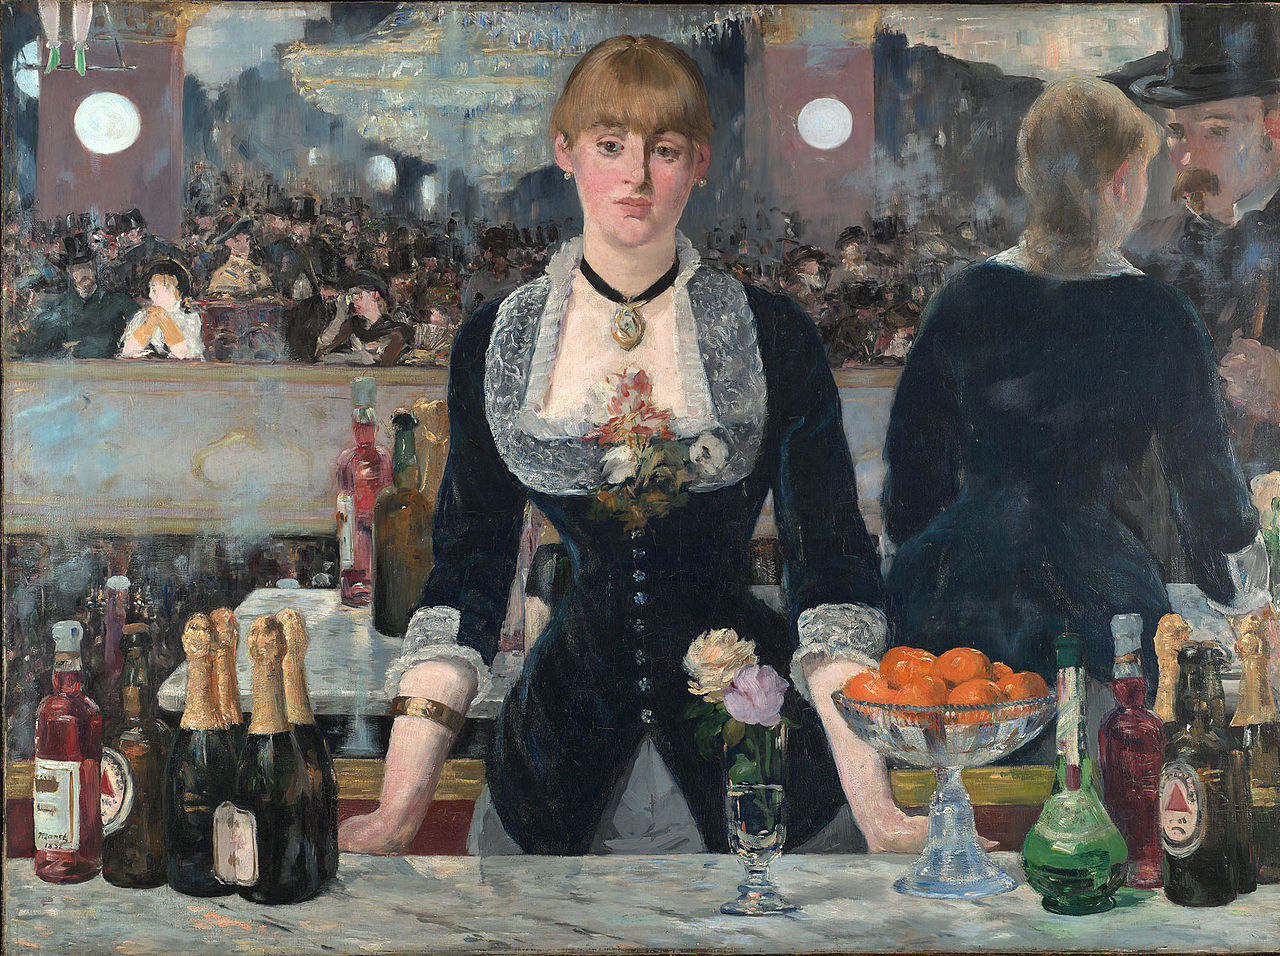 Manet_Le Bar aux Folies-Bergère_ Londres_Courtauld Institute Galleries